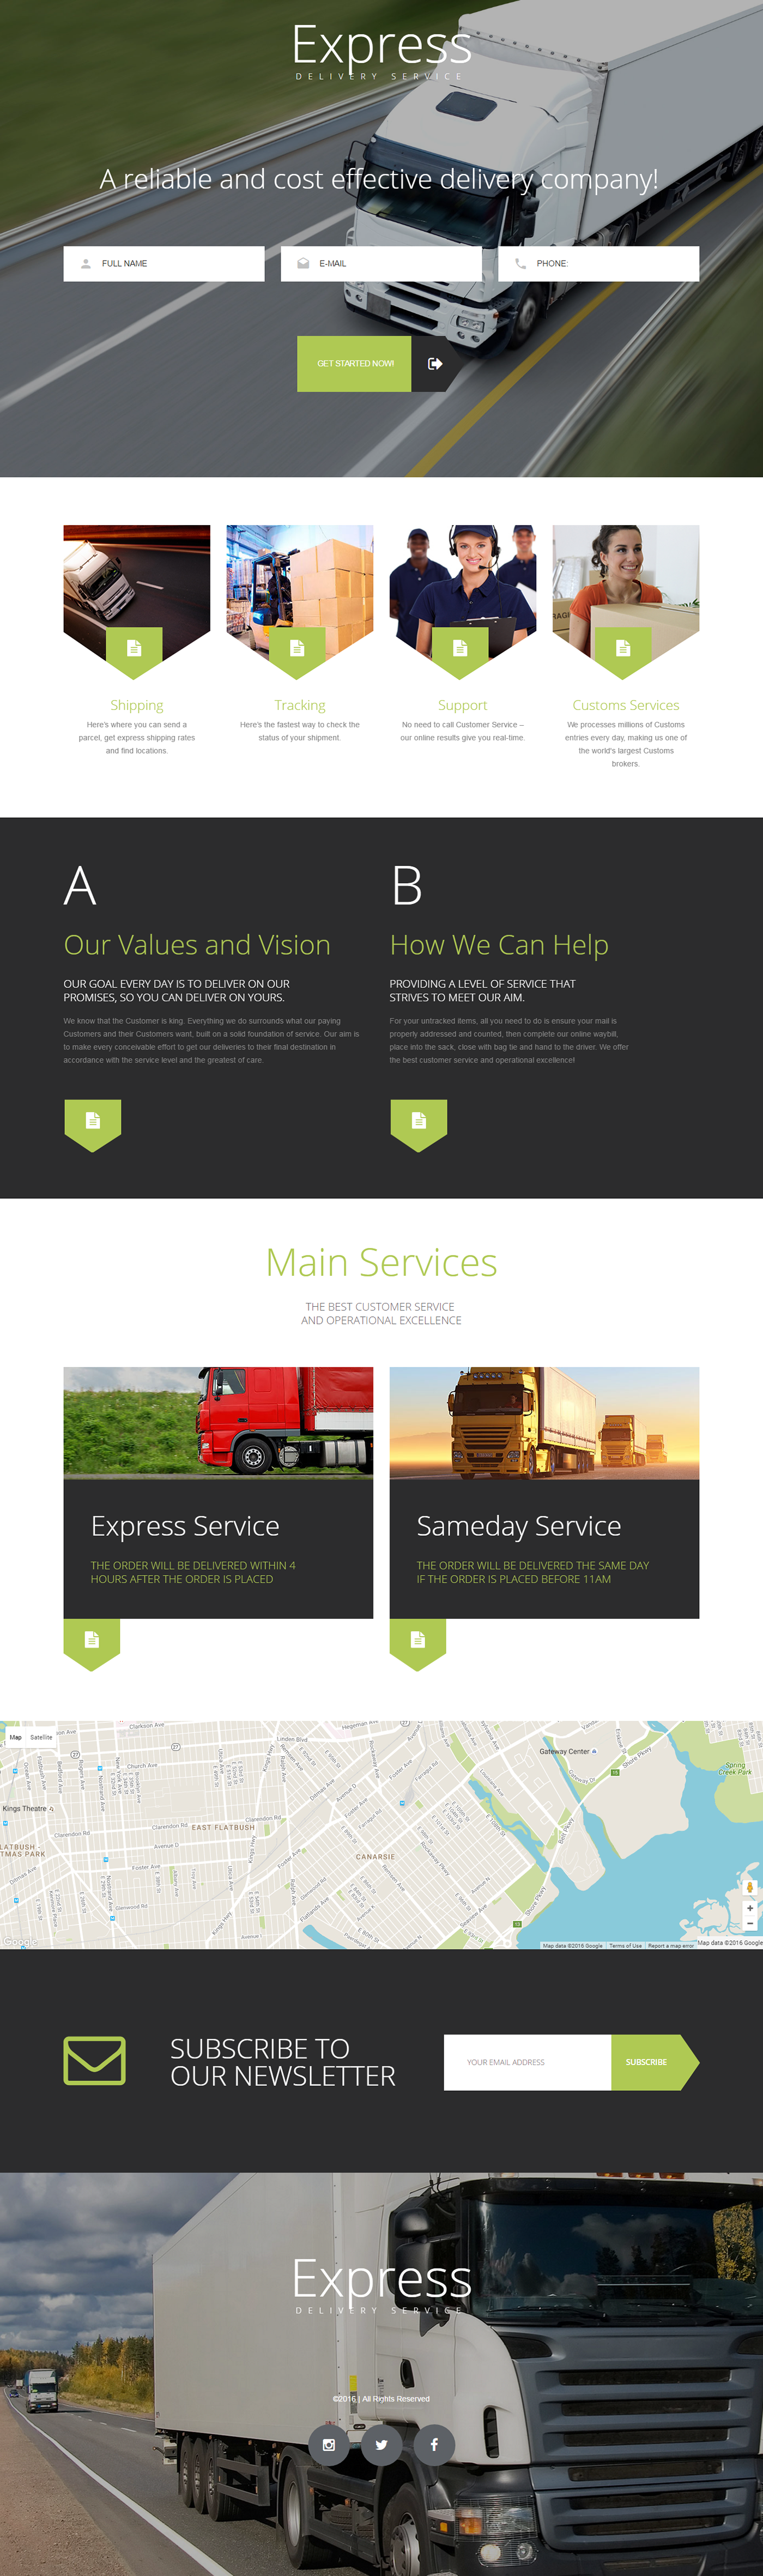 Express Delivery Services Landing Page Template on Behance | Landing ...